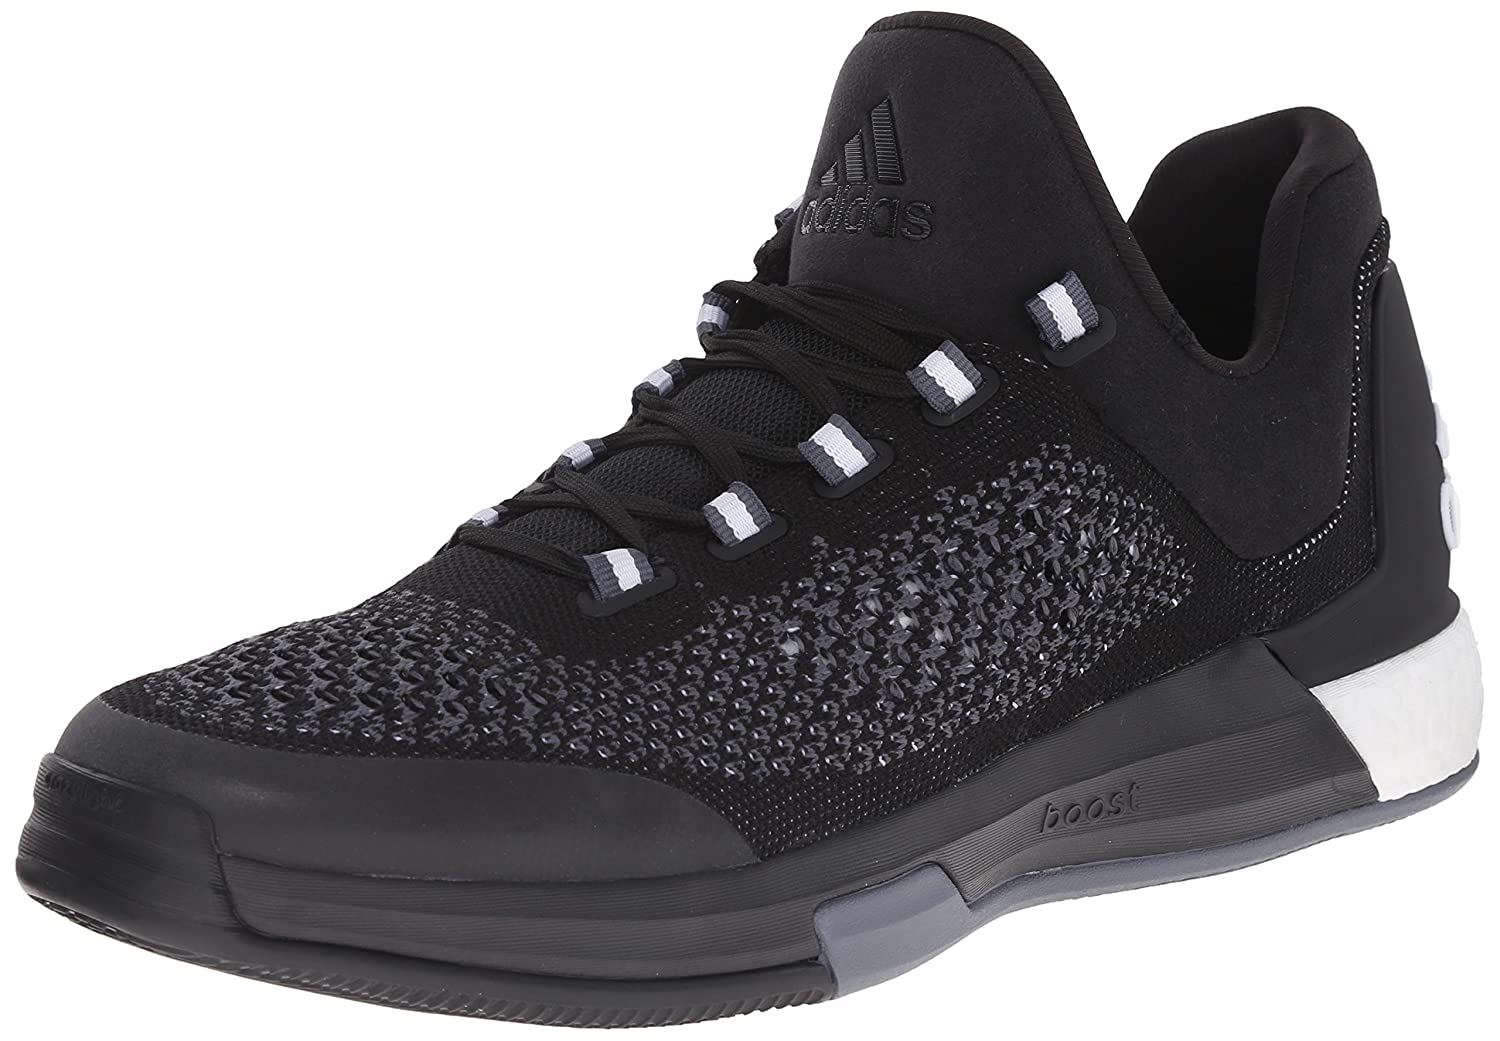 sneakers for cheap 6439f 68f0a ... schwollo.co adidas CrazyLight Boost 2016 Performance Review Materials adidas  Performance Mens 2015 Crazylight Boost Primeknit Basketball Shoe ...